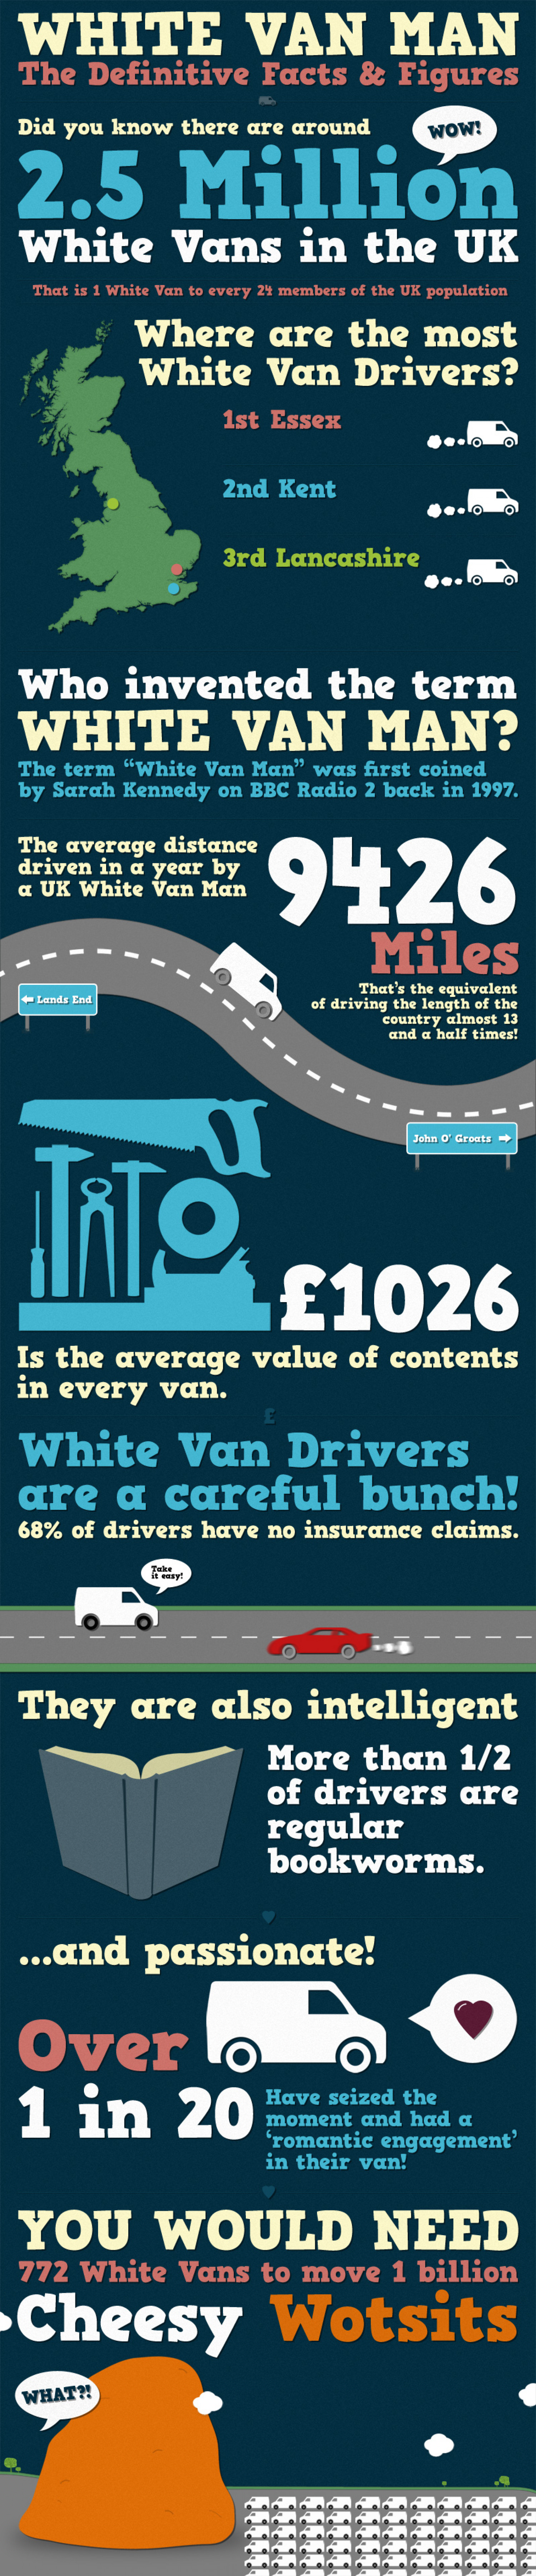 All About the White Van Man Infographic